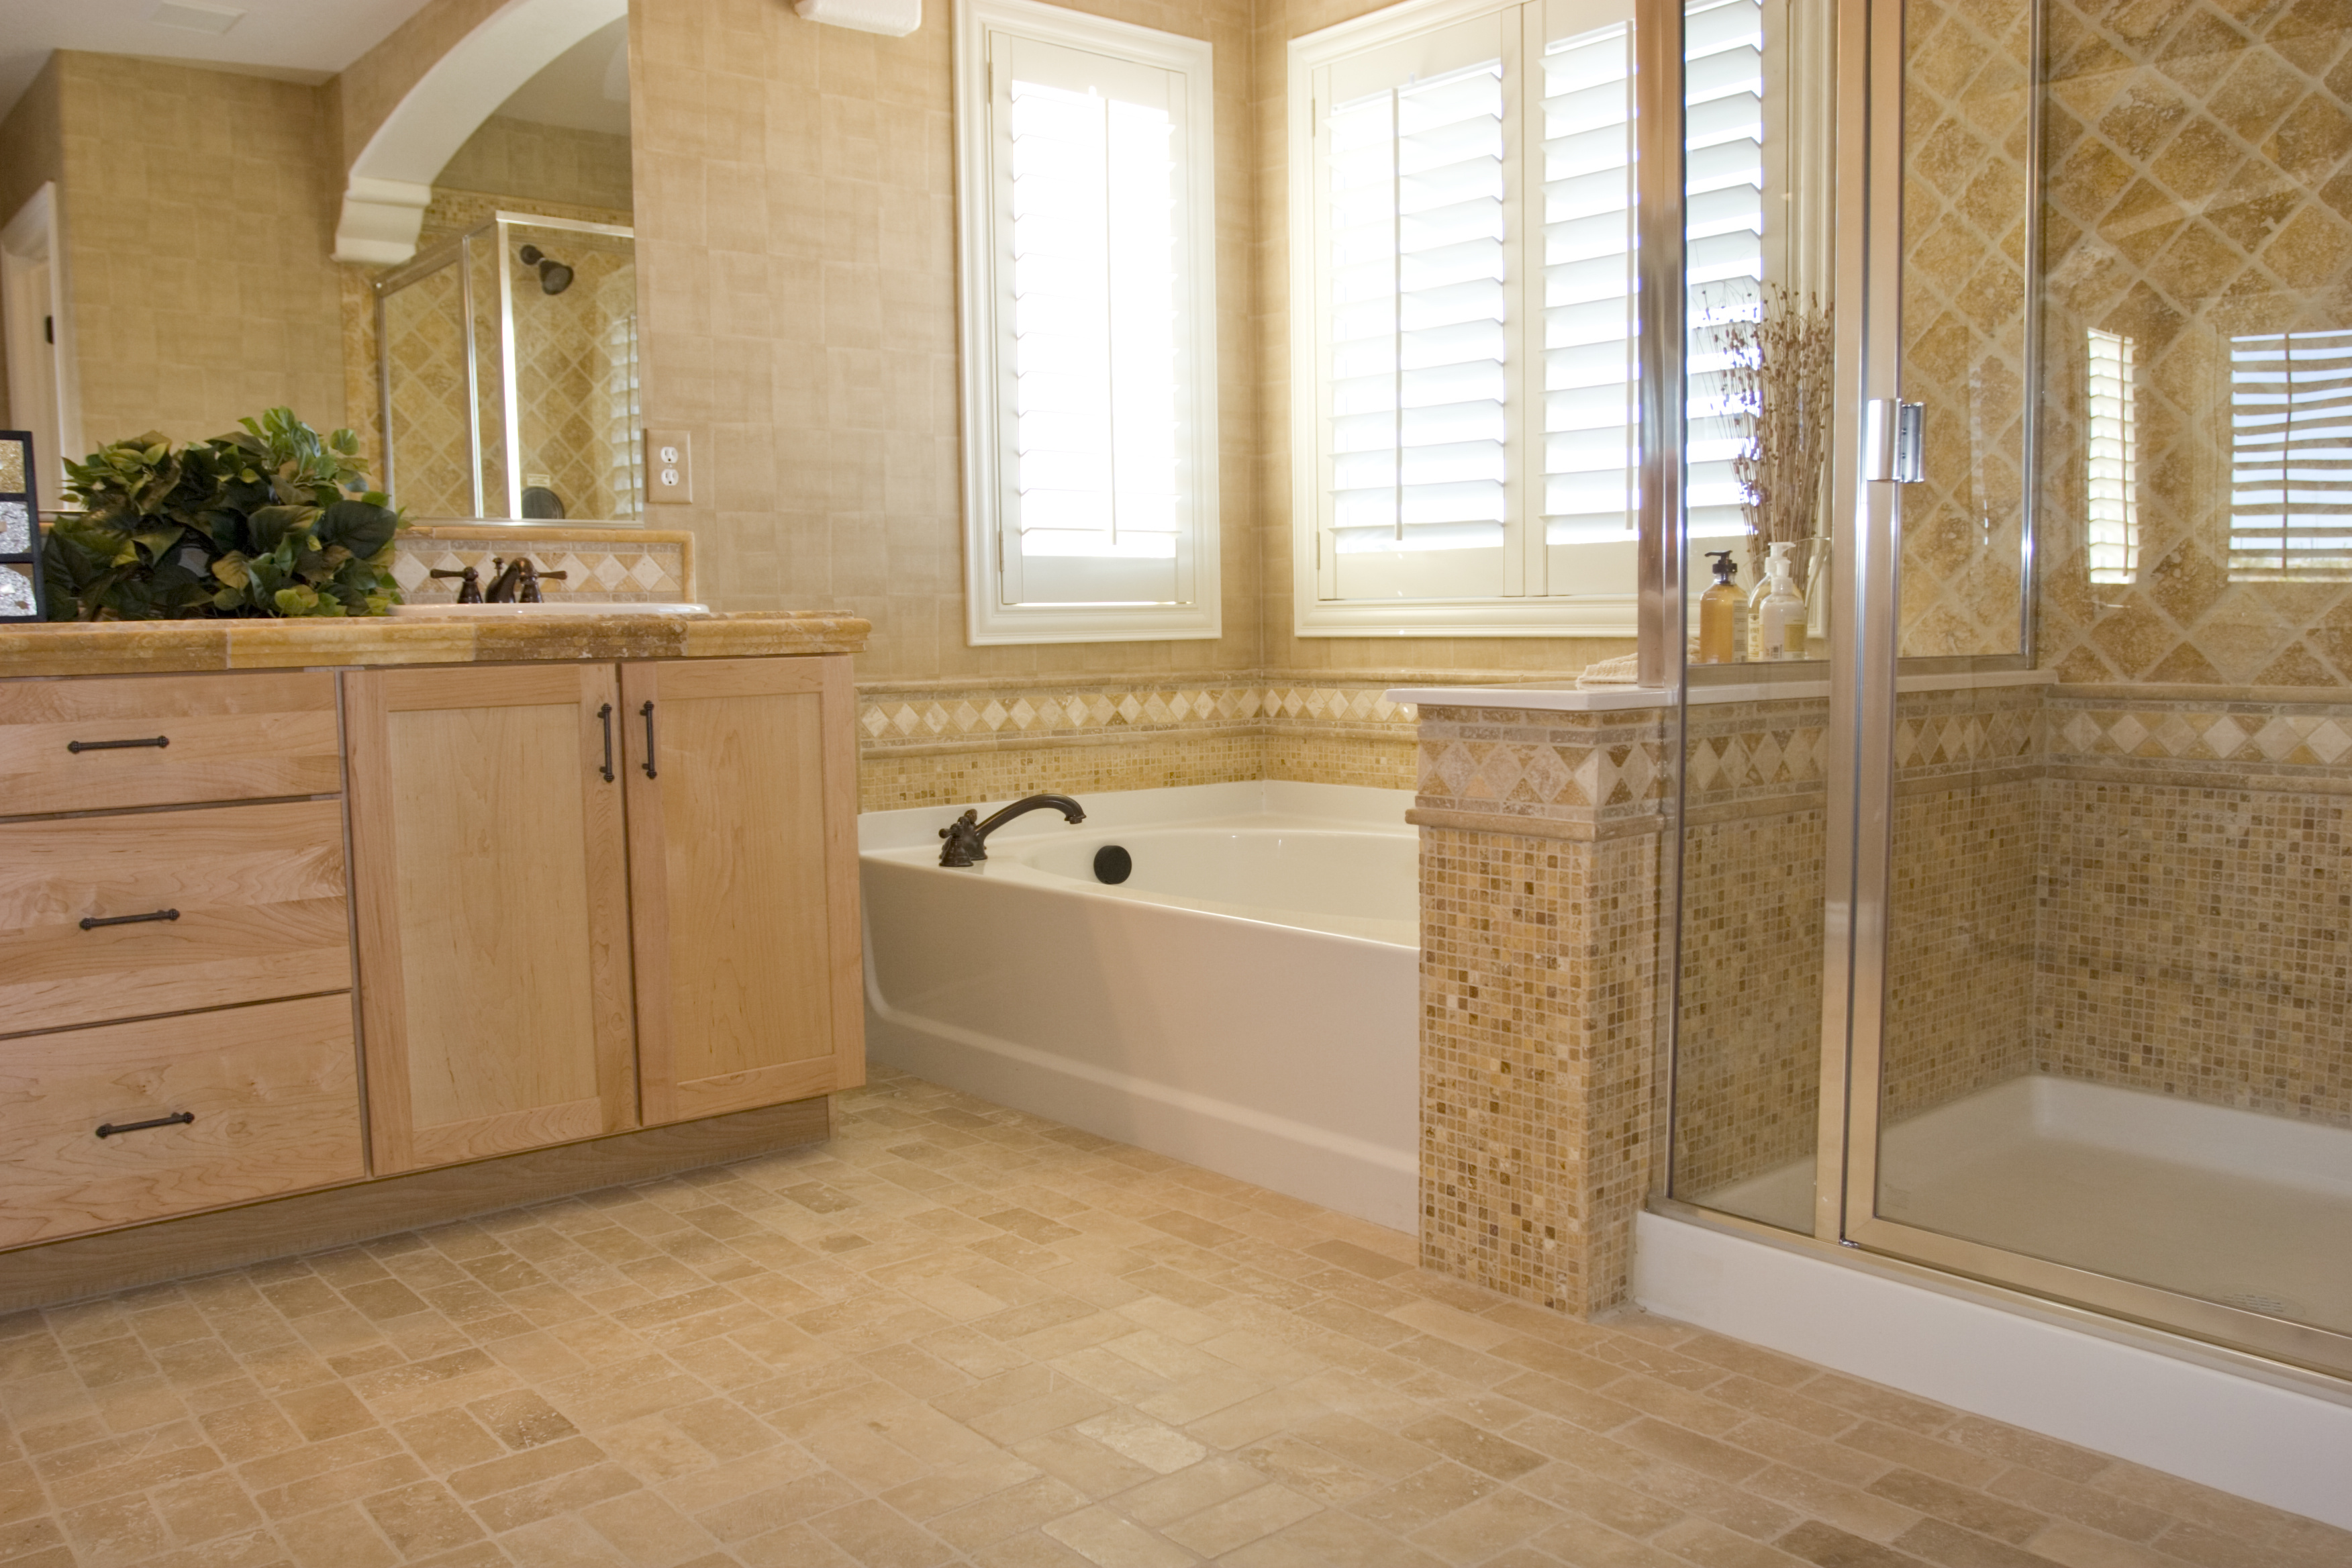 renovation bathroom remodel contractors services remodeling antonio tx wright san dunn